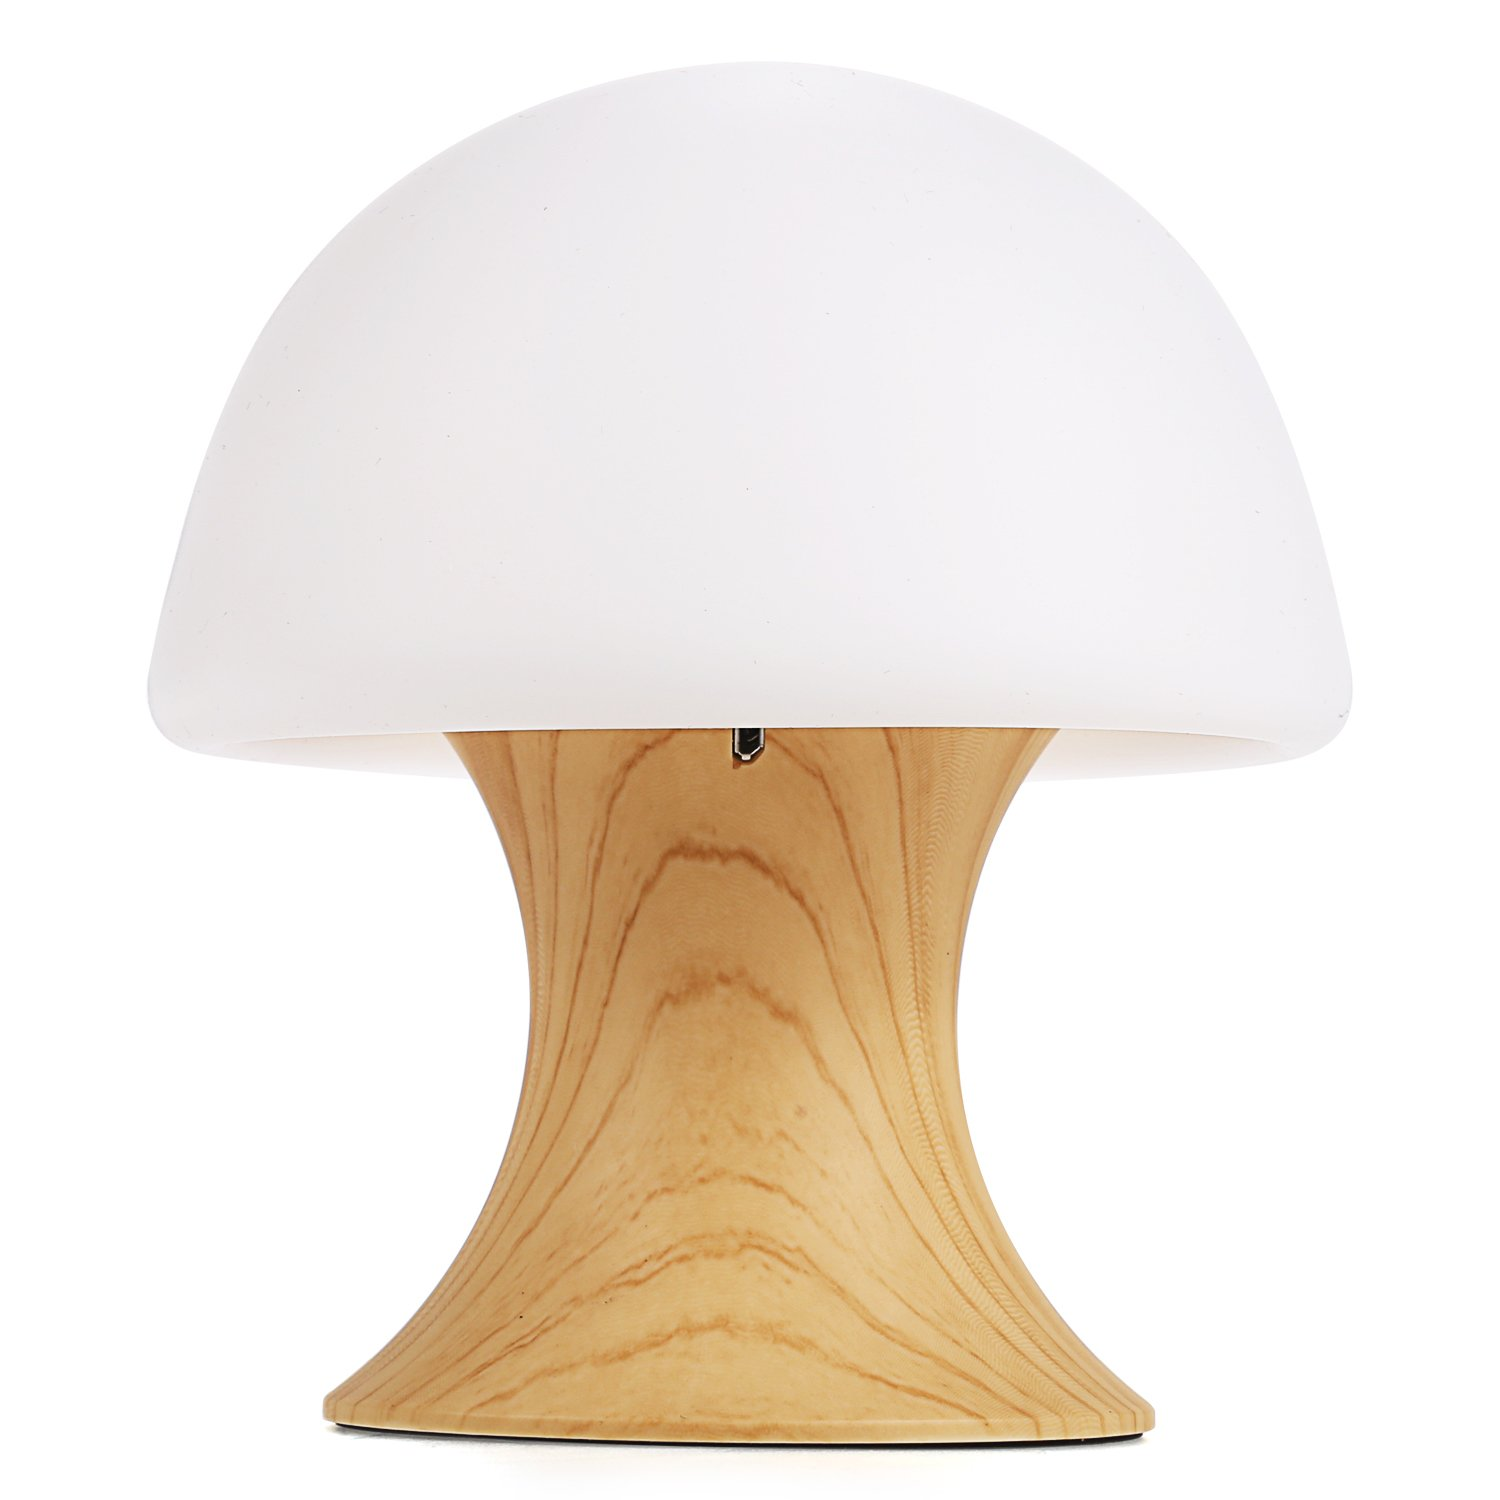 XKTTSUEERCRR Rechargeable Multicolor LED Night Lamp, Silicone Light Ball and Mushroom Variable Appearance, Baby / Kids Mushroom Night Light Table/Desk Lamp with Timer Mode